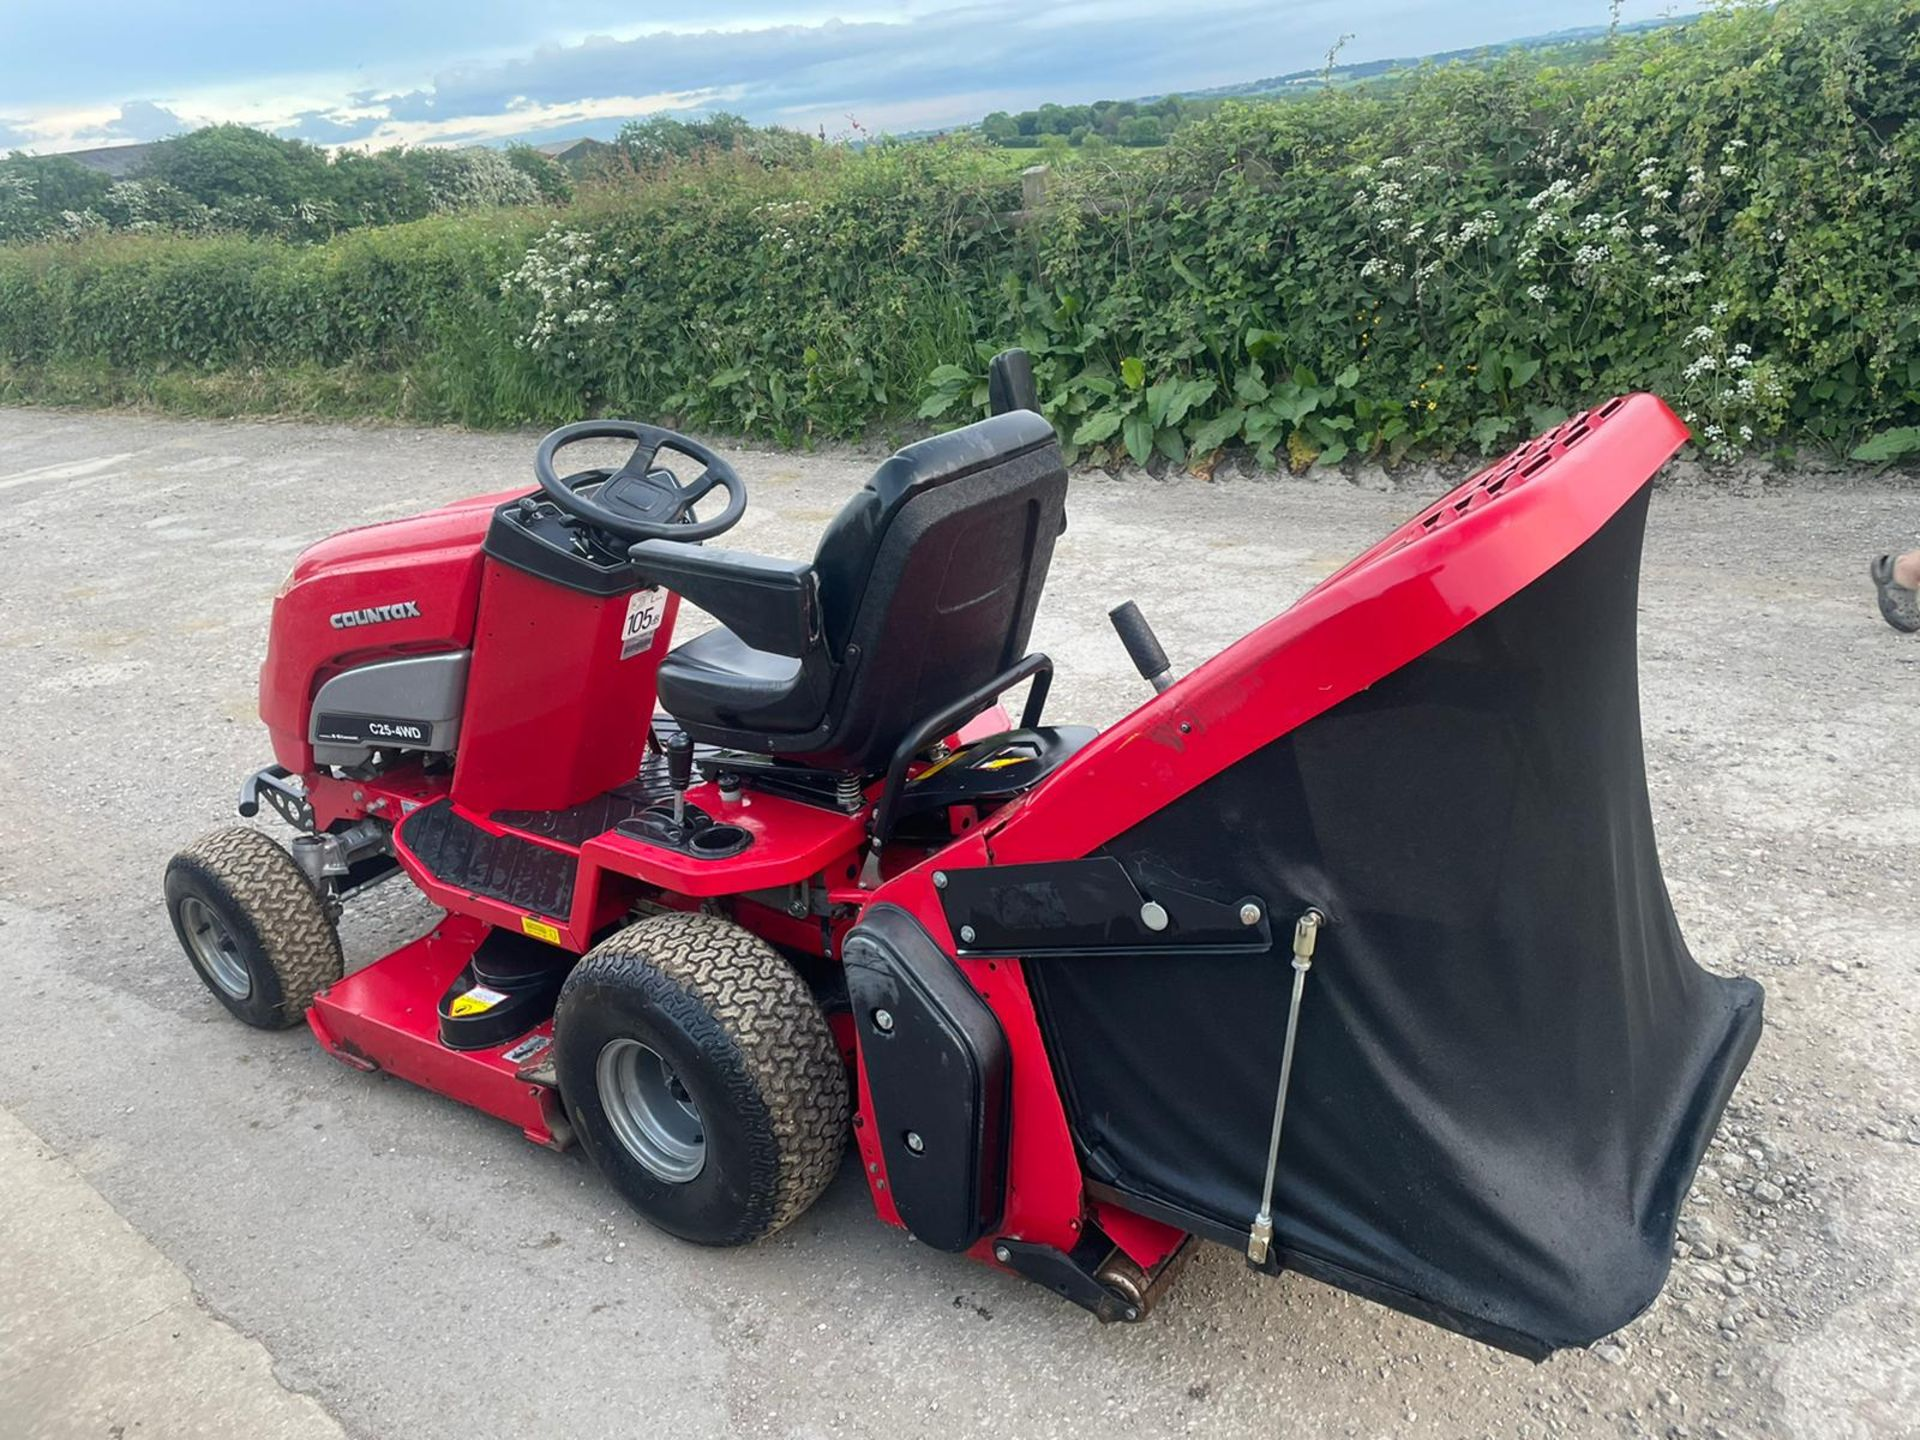 COUNTAX C25-4WD RIDE ON LAWN MOWER, RUNS AND WORKS, CUTS AND COLLECTS *NO VAT* - Image 3 of 7